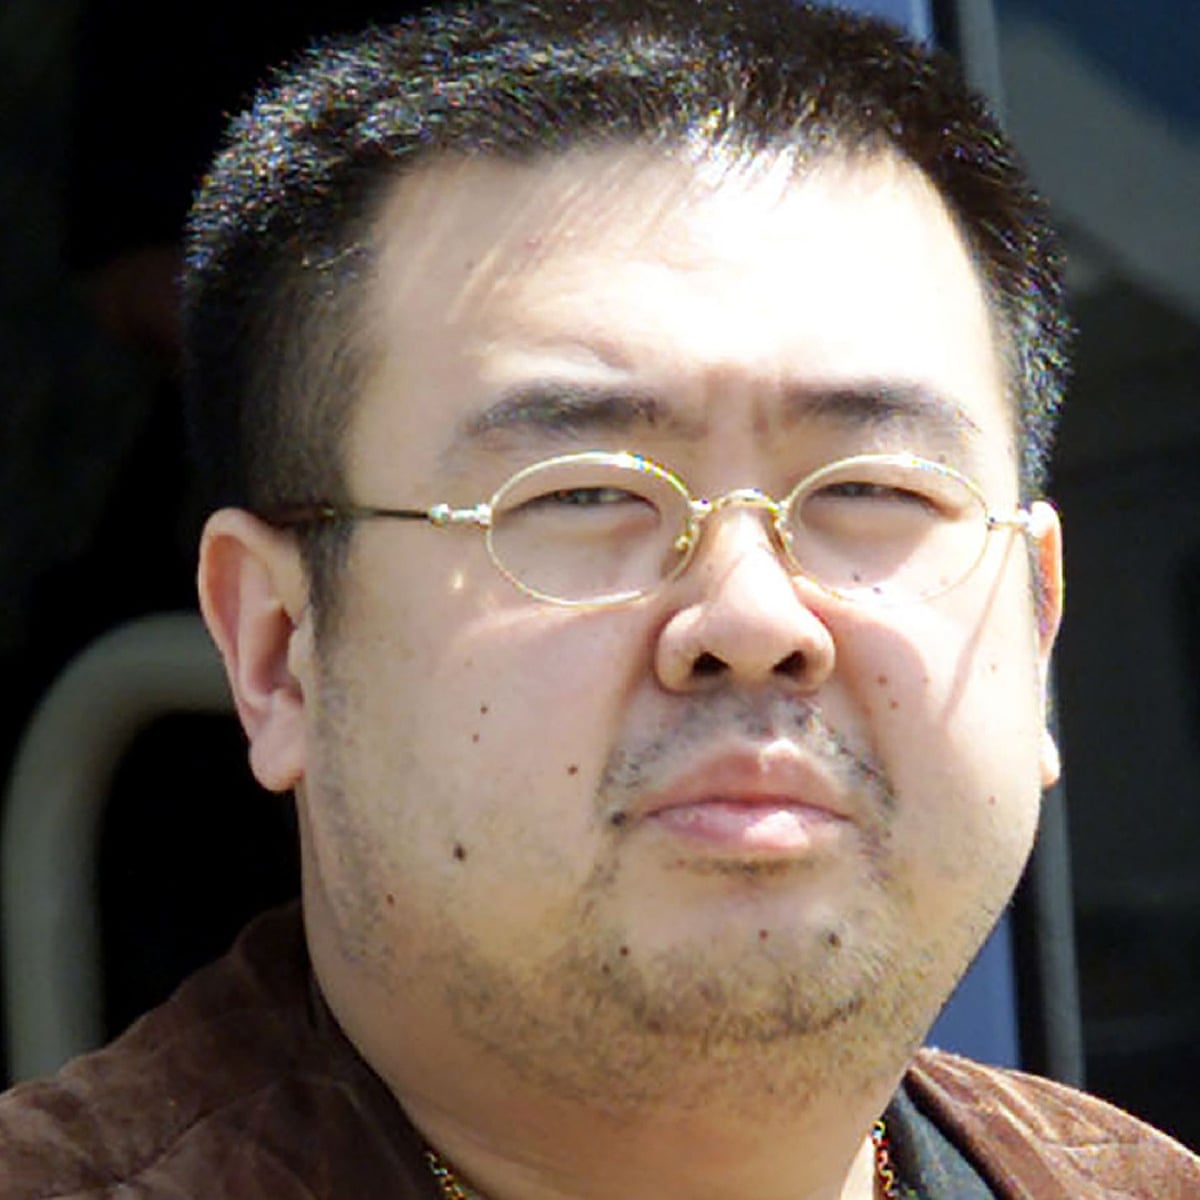 Kim Jong Nam Half Brother Of North Korean Leader Was A Cia Informant World News The Guardian